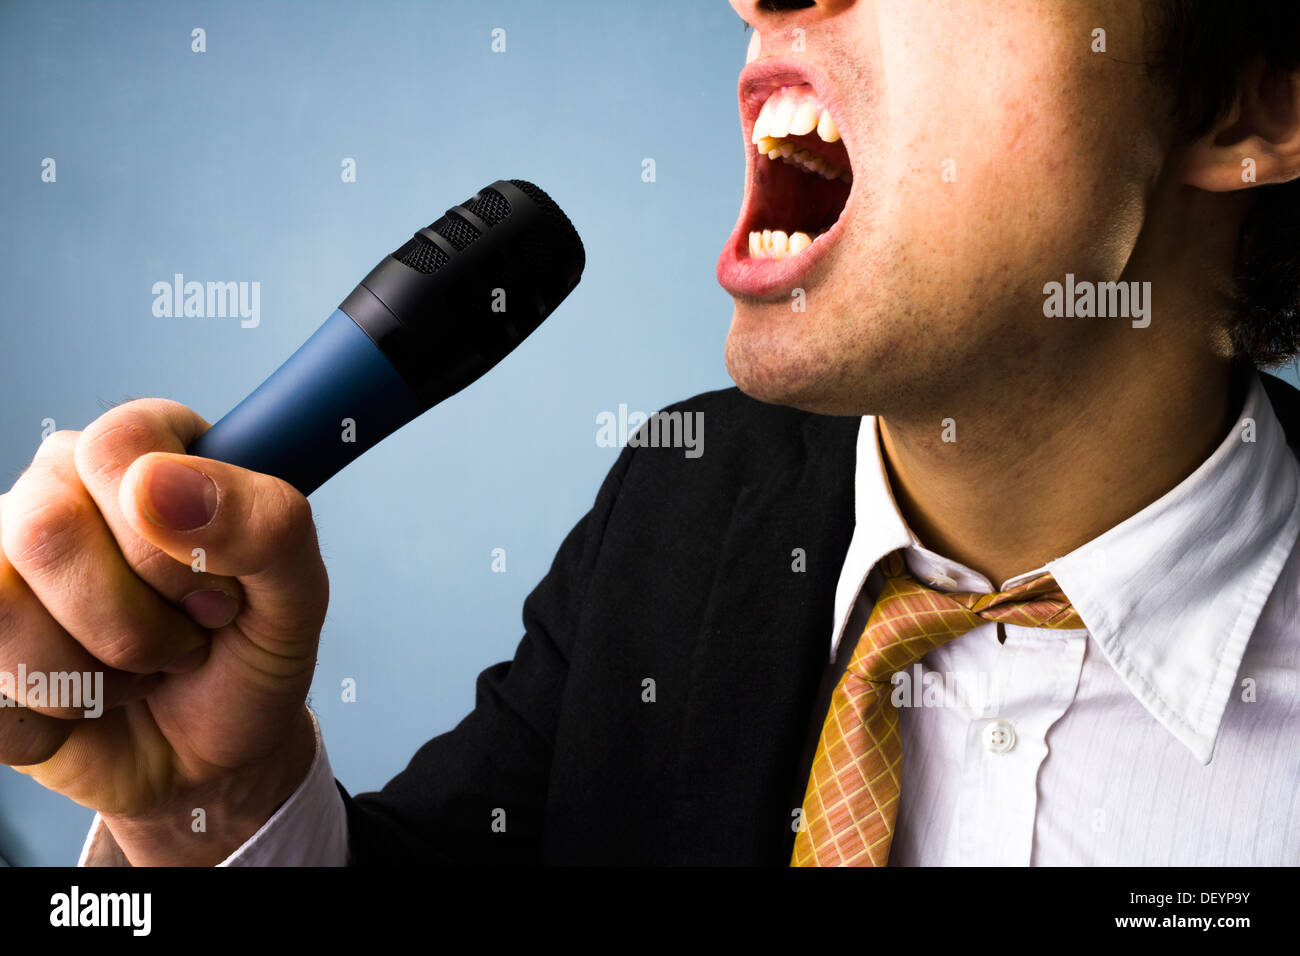 Close up on a young businessman's face as he is singing karaoke - Stock Image